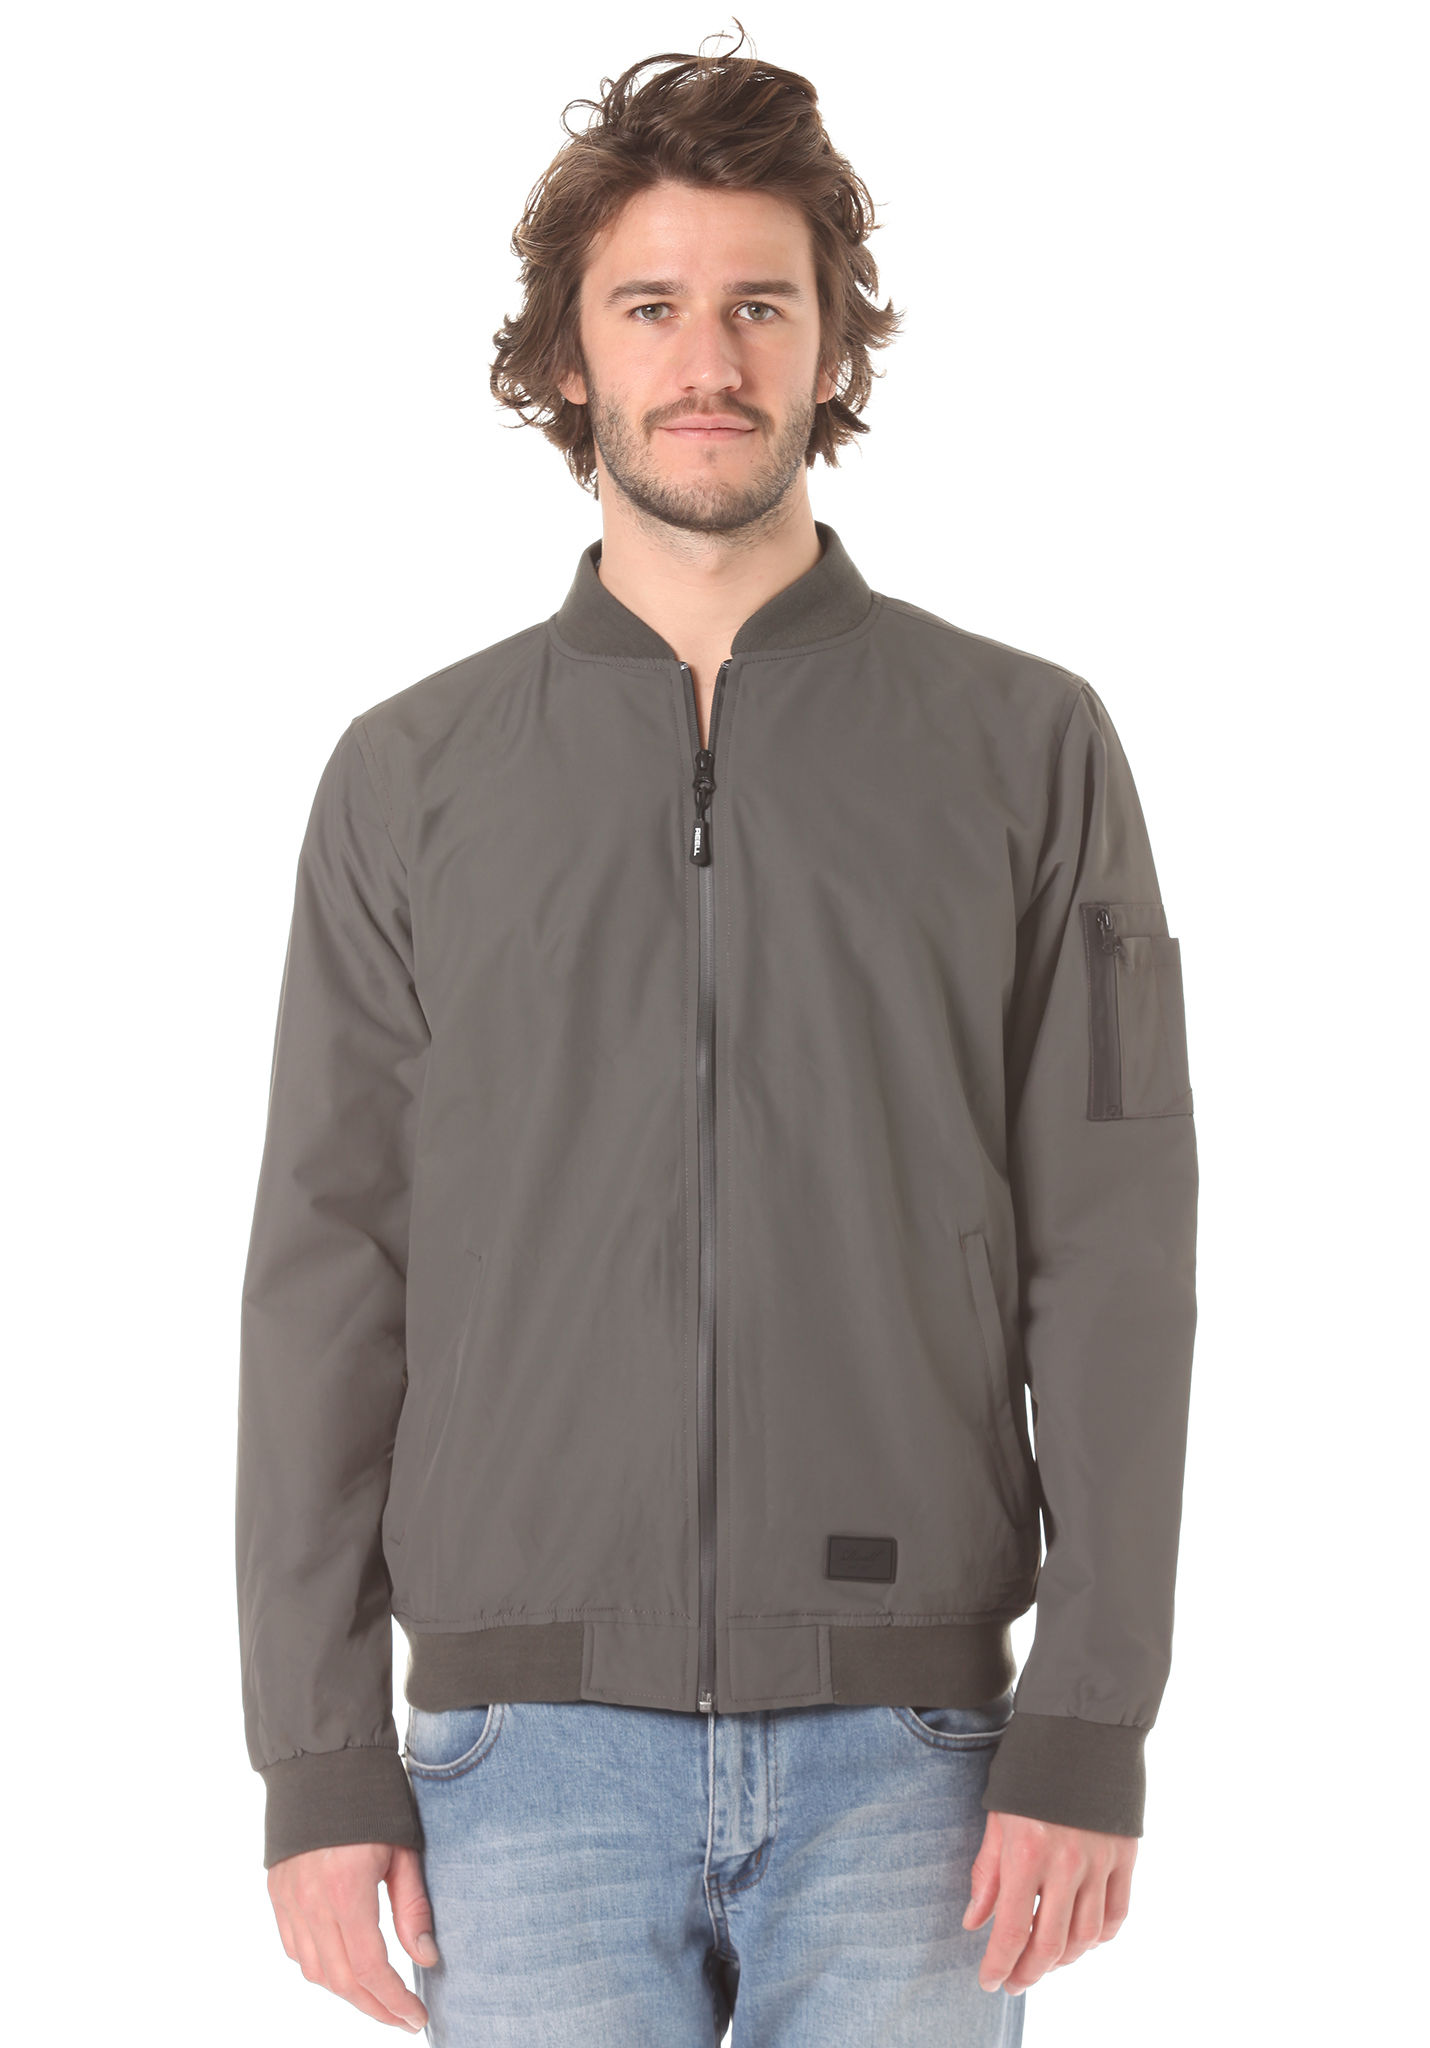 Reell Technical Flight - Jacket for Men - Grey - Planet Sports